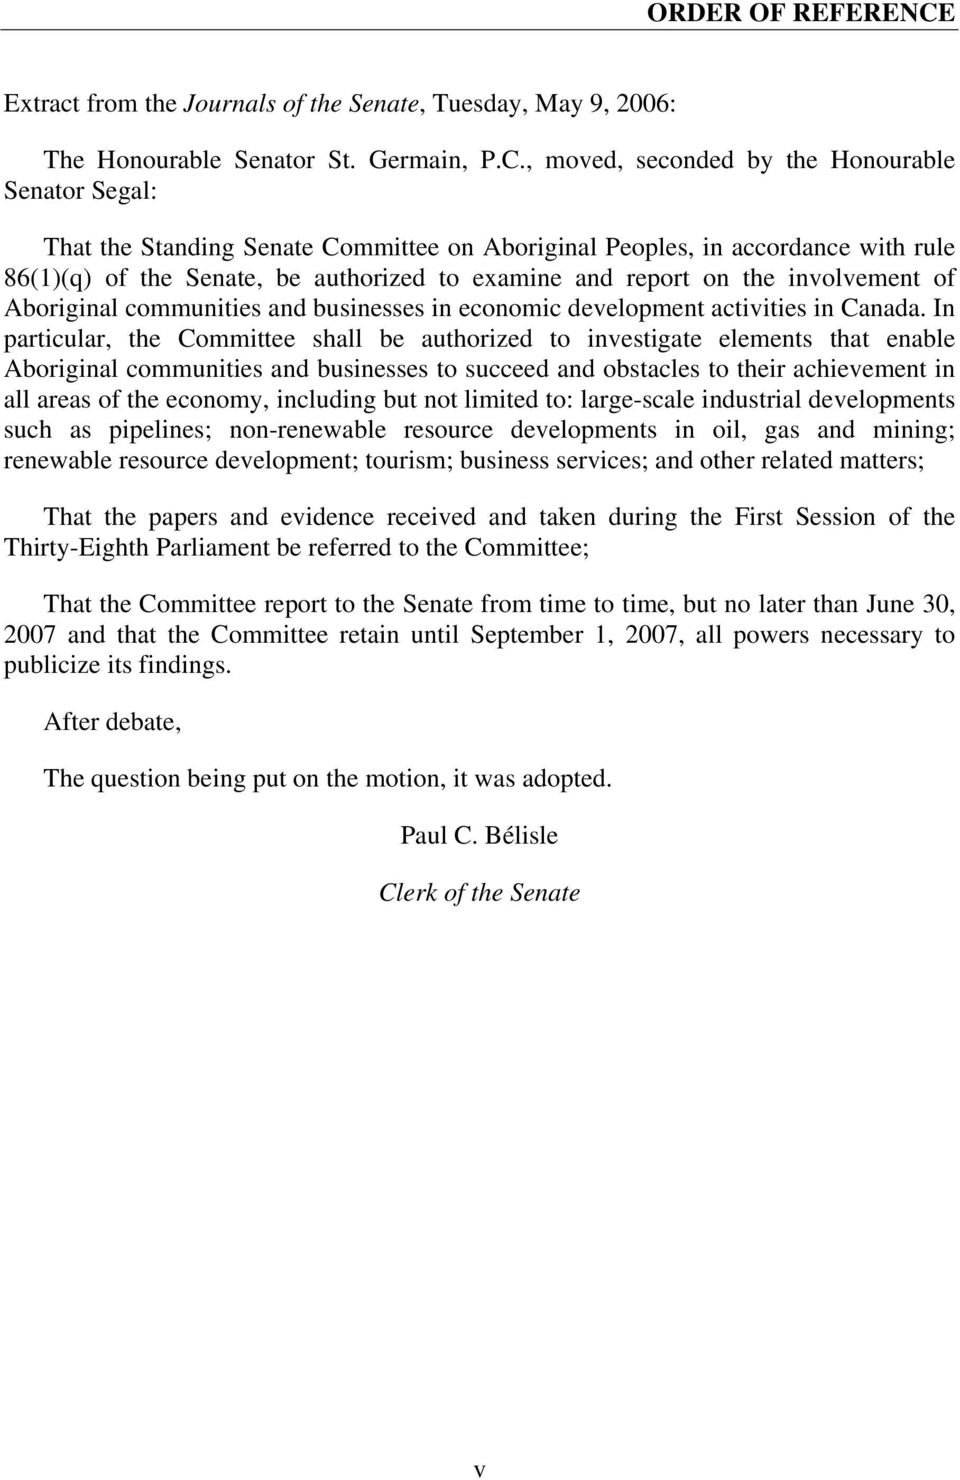 , moved, seconded by the Honourable Senator Segal: That the Standing Senate Committee on Aboriginal Peoples, in accordance with rule 86(1)(q) of the Senate, be authorized to examine and report on the